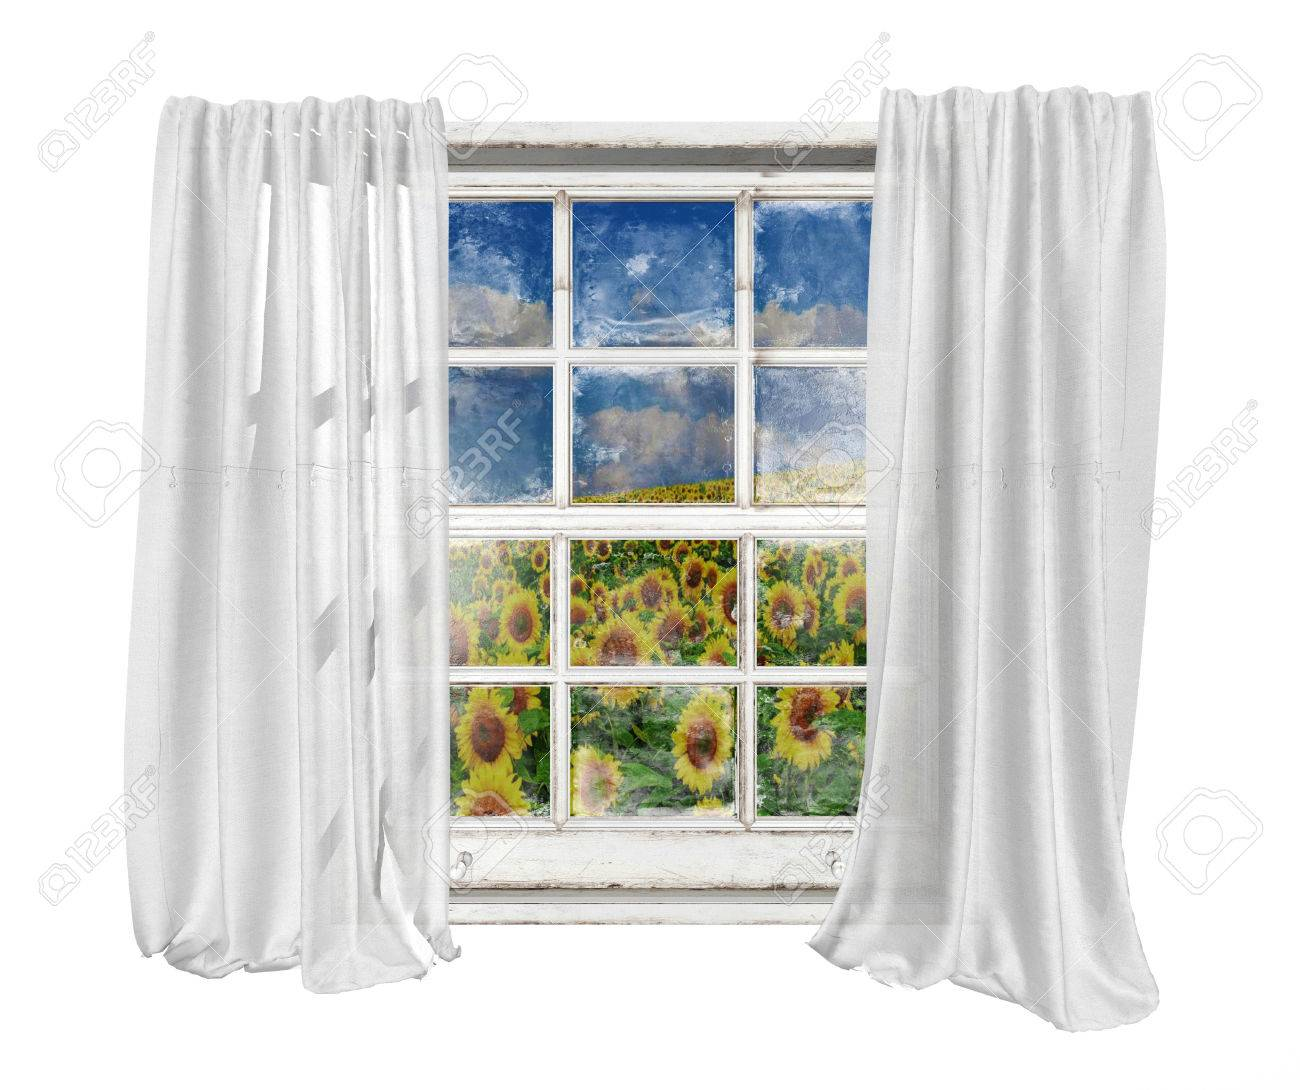 Royalty free or white curtain background drapes royalty free stock - Old White Vintage Window With White Curtains Isolated On White Background Seeing Sunflowers Field And Cloud